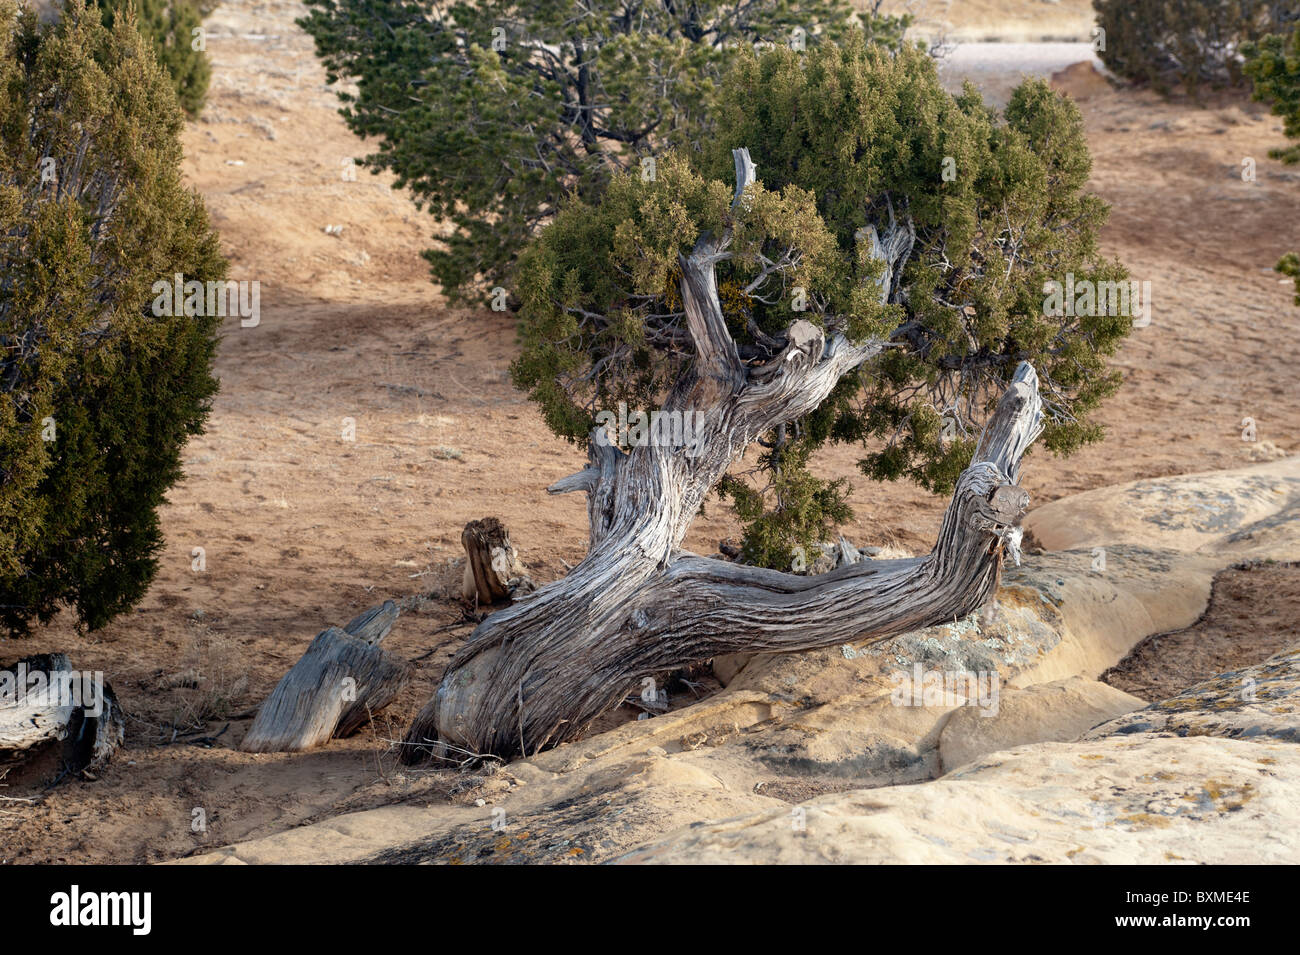 A twisted, gnarled old Juniper clings to life in the harsh arid environment of the El Malpais National Monument - Stock Image